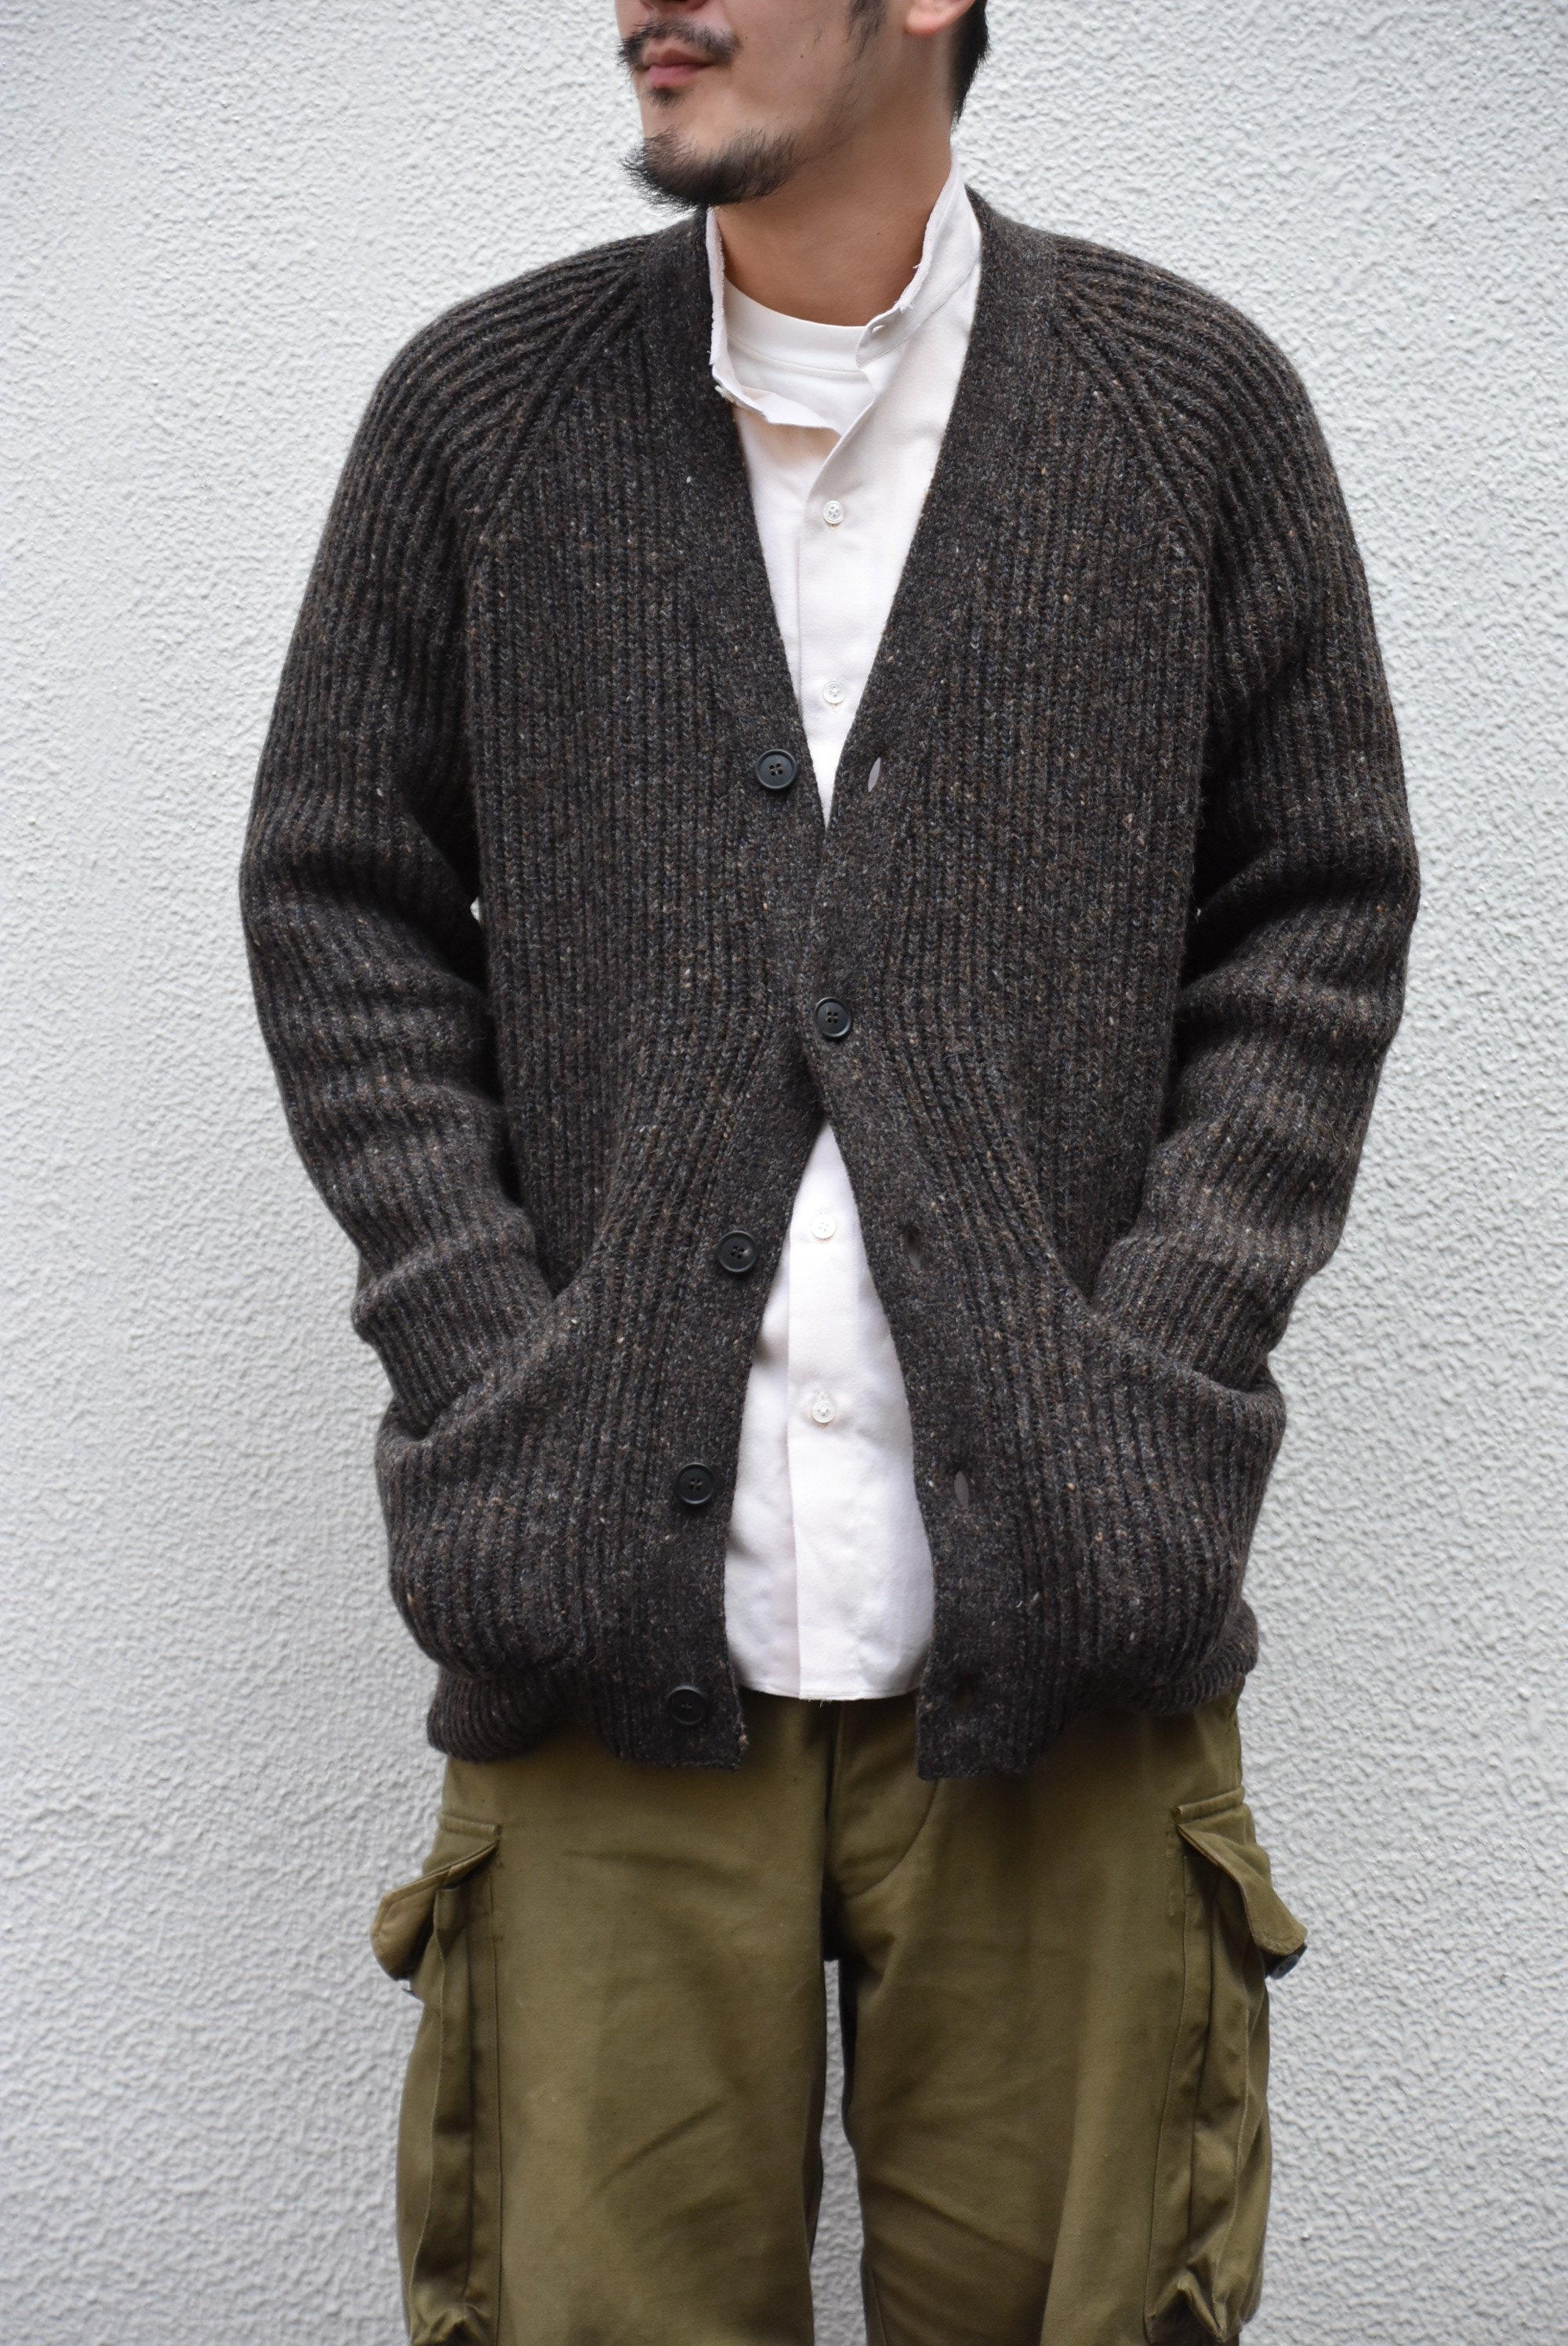 【2020】 Cristaseya(クリスタセヤ)/ CAMEL RIBBED CARDIGAN-BROWN- #22KA-CA-BB(1)